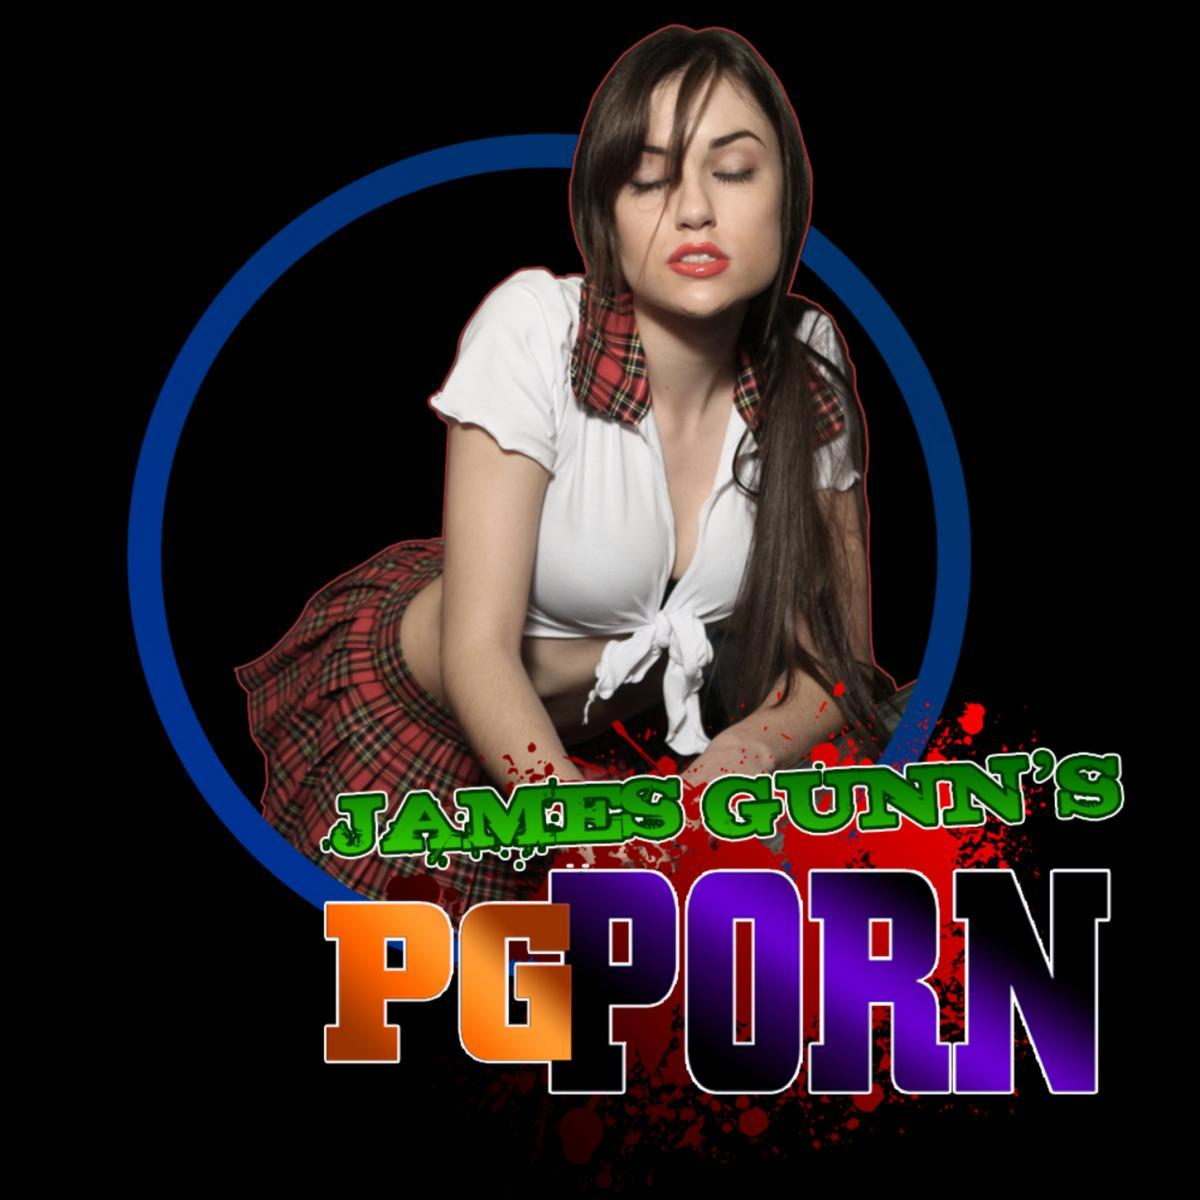 pompini free porn gratis video